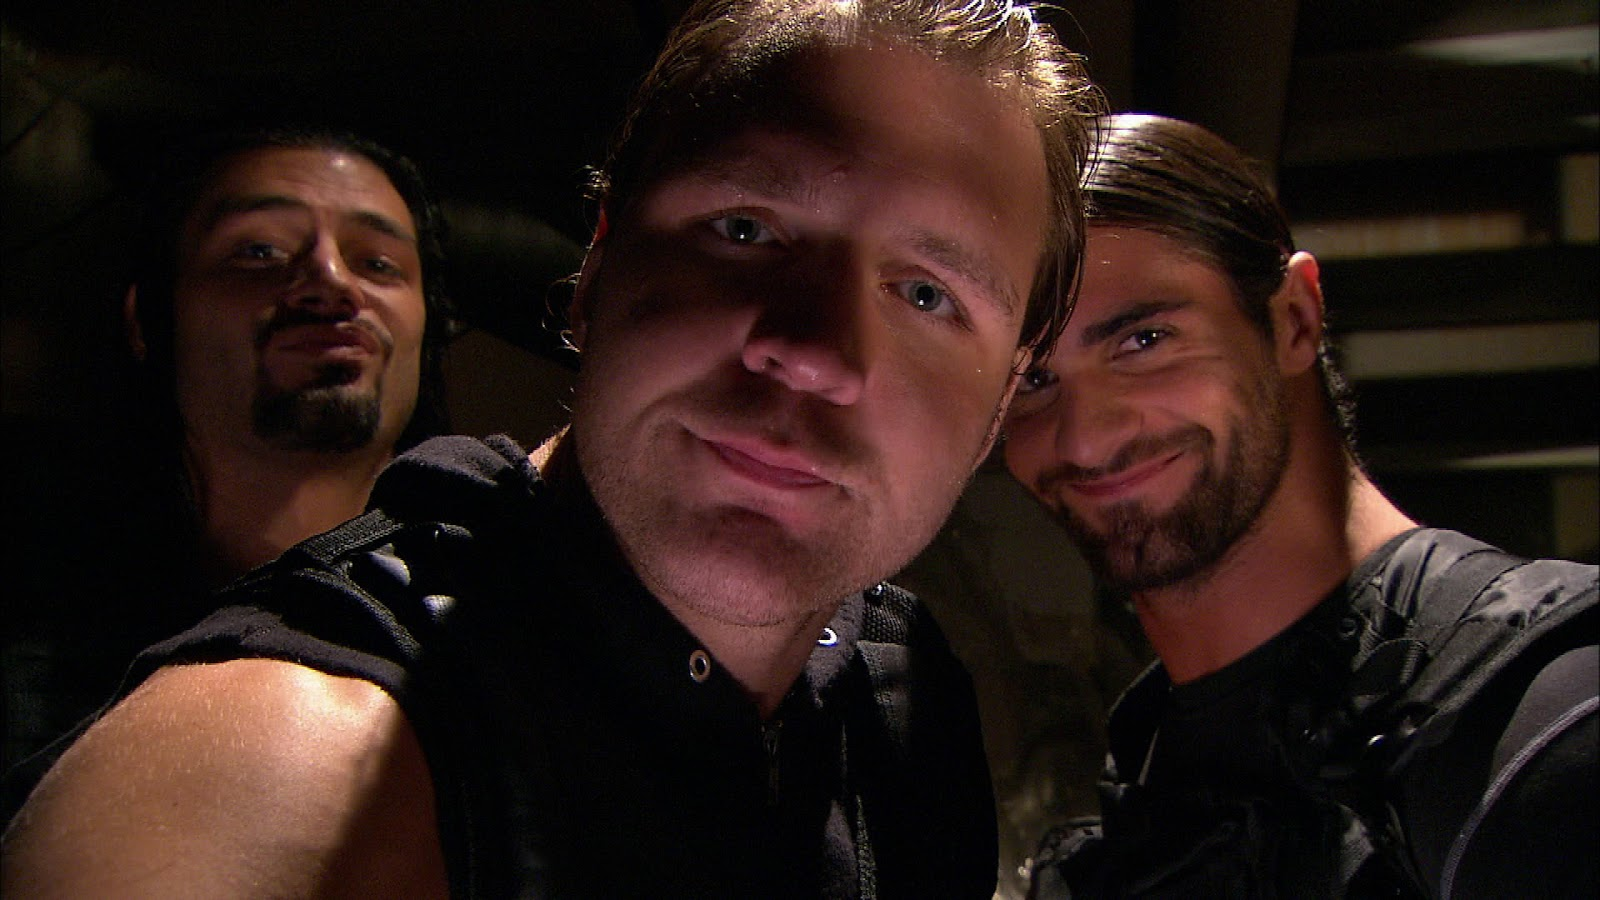 The Shield Hd Wallpapers Download WWE HD WALLPAPER FREE 1600x900